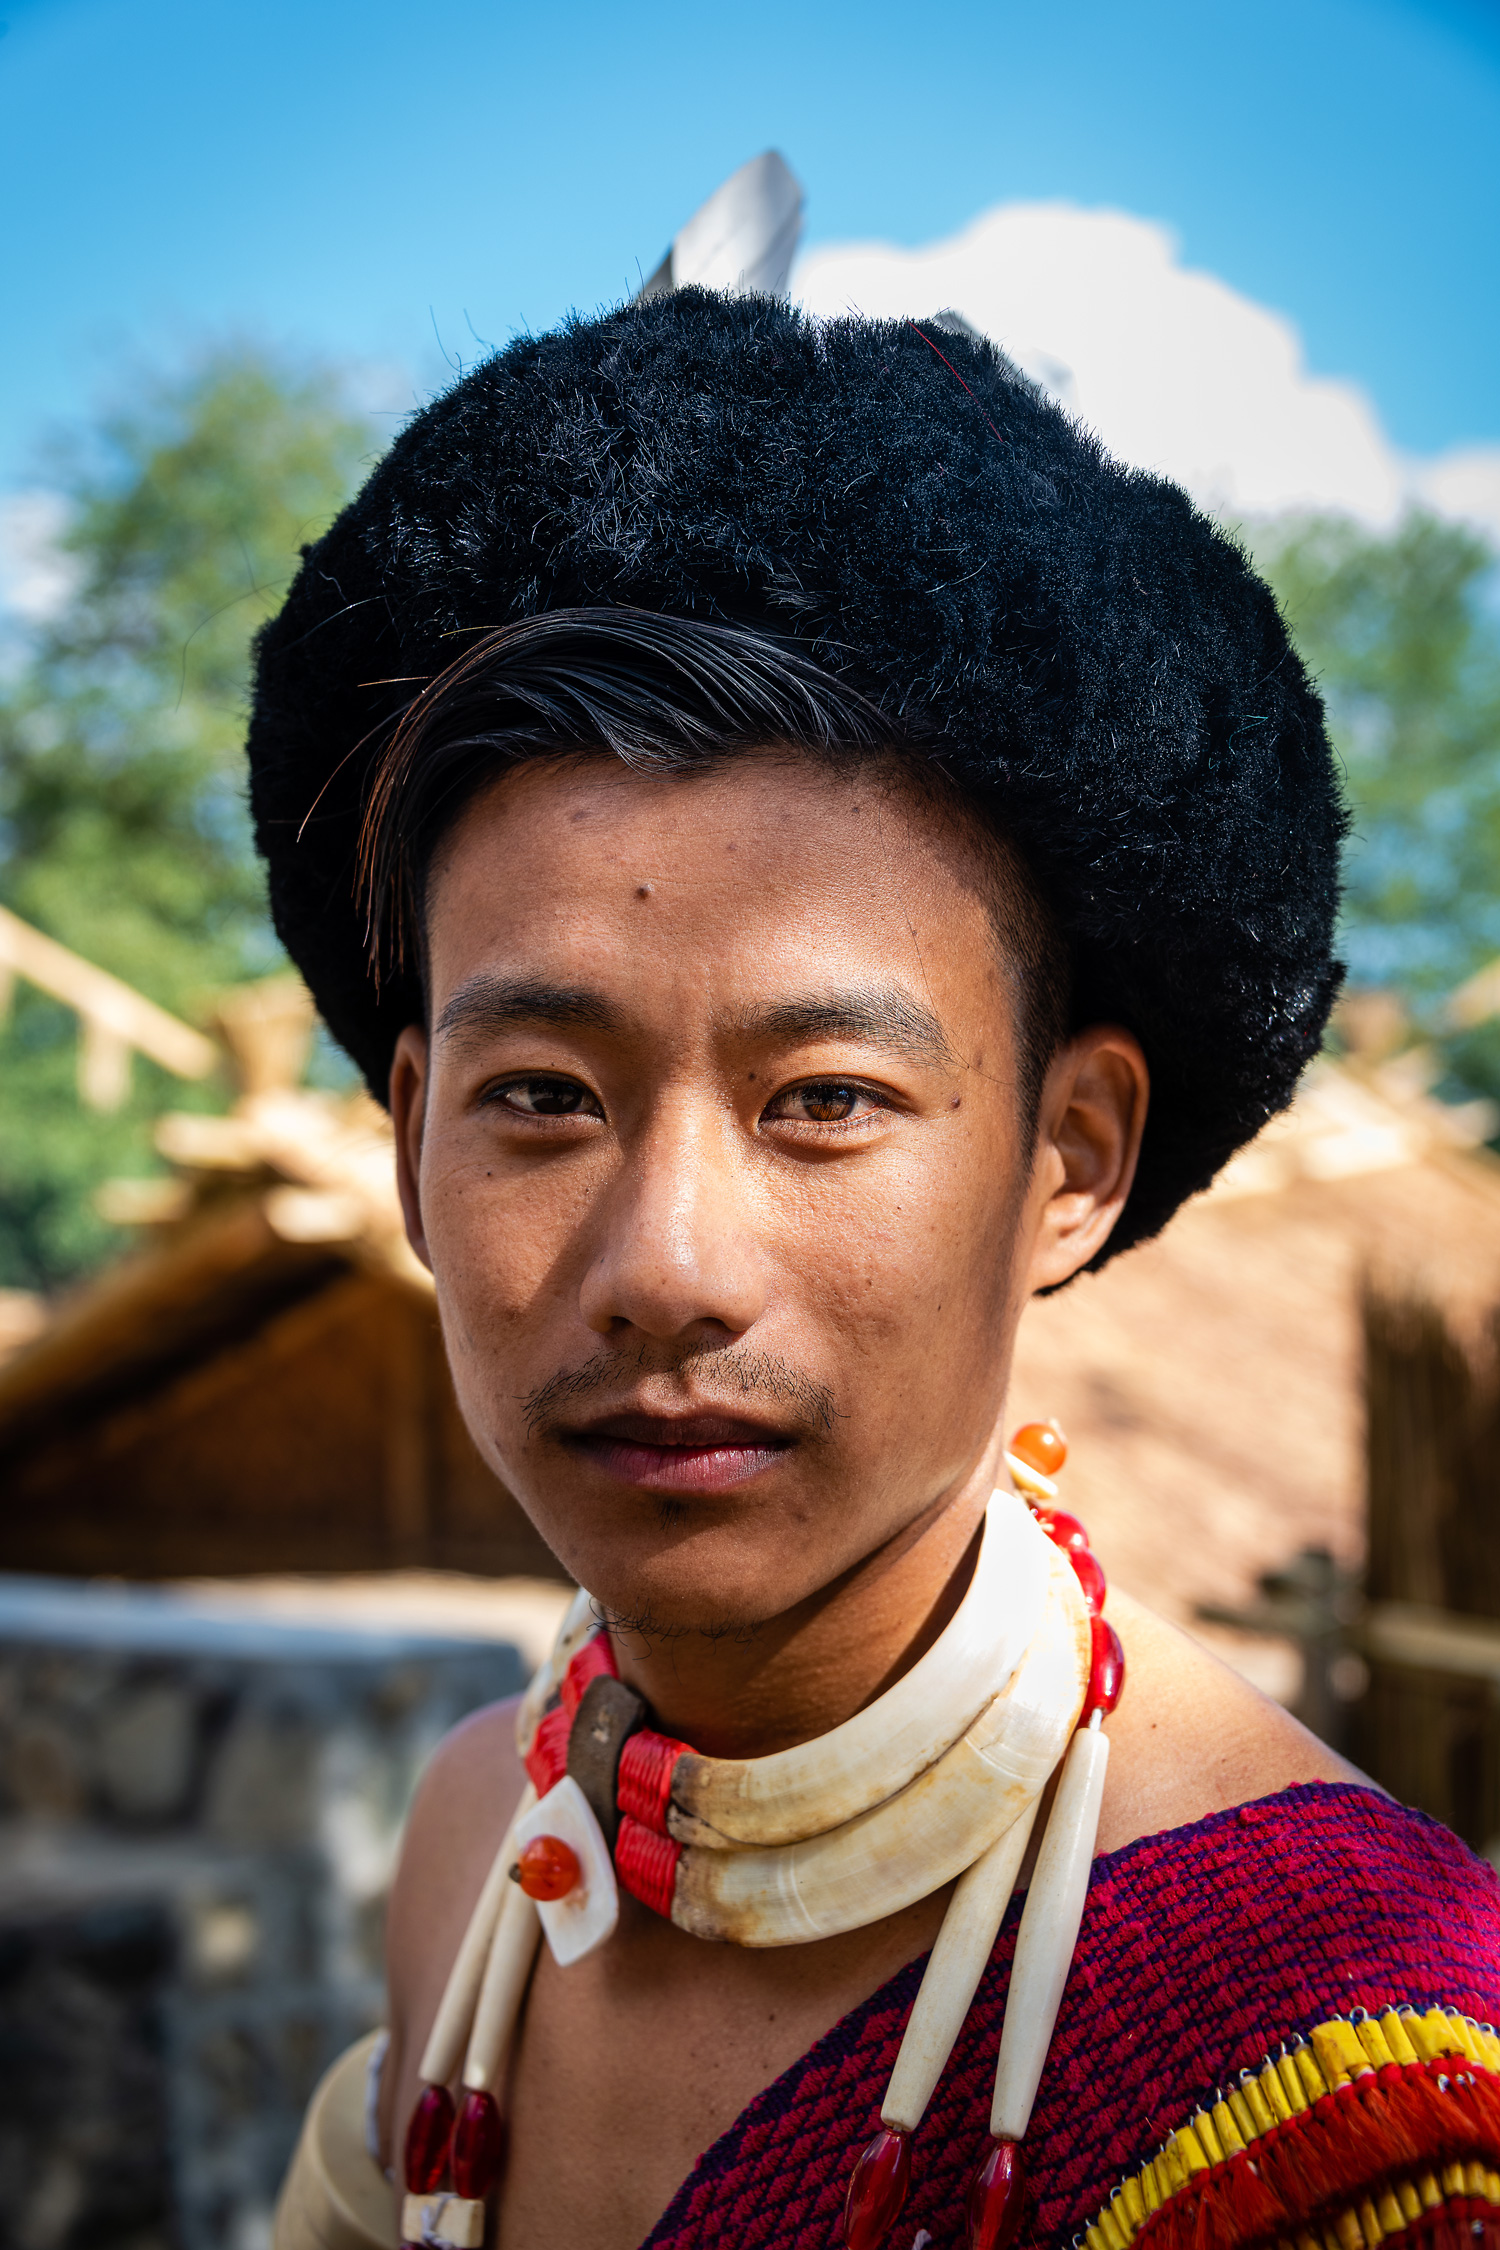 A Young naga Tribal at the Hornbill Festival